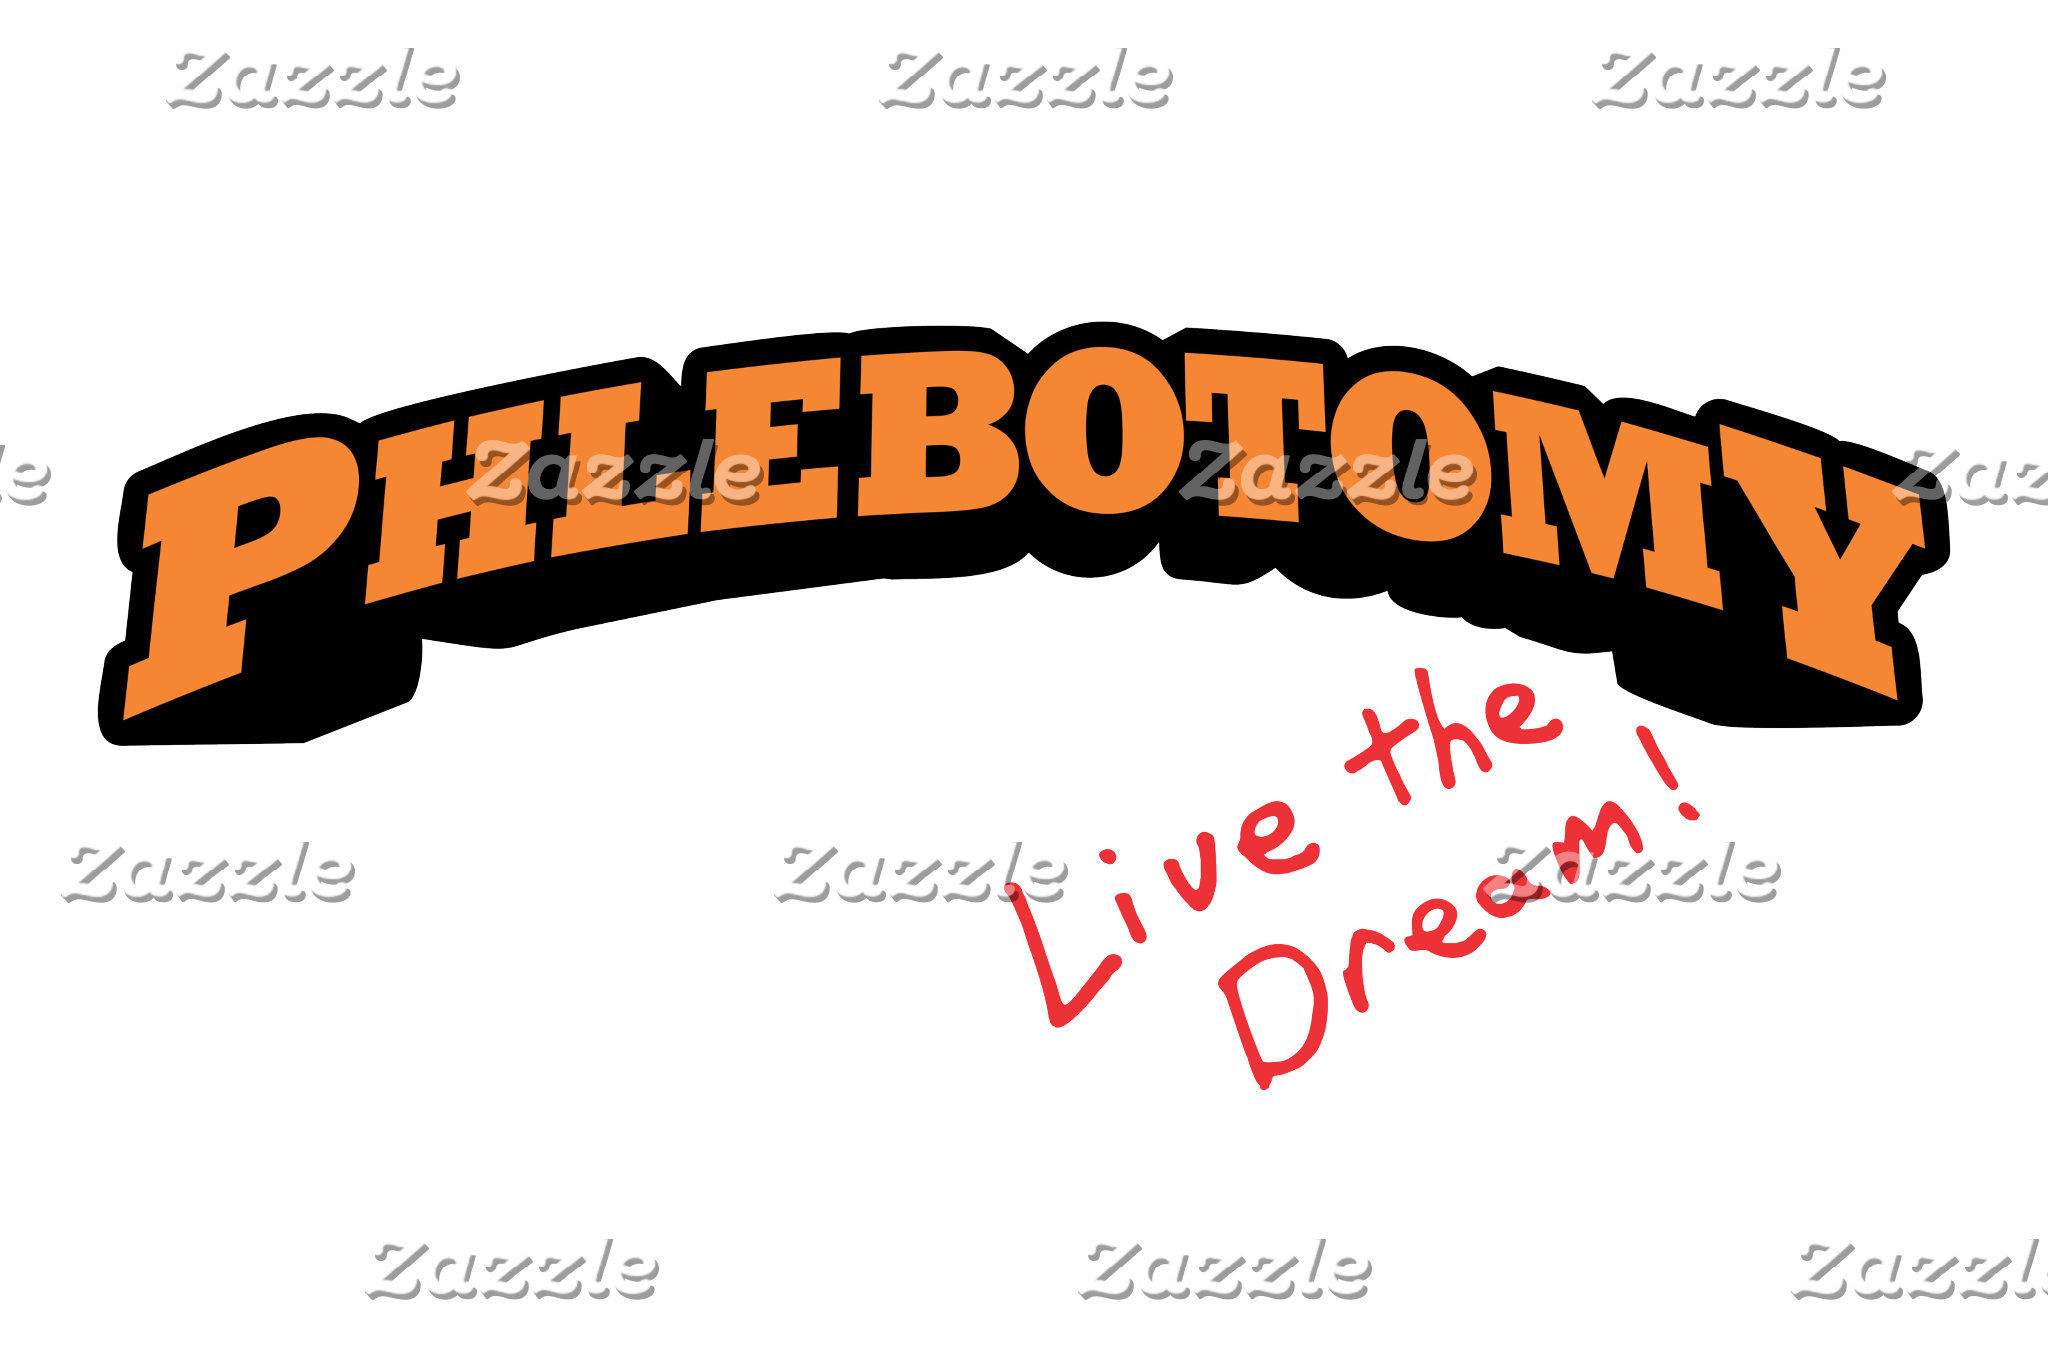 Phlebotomy - Live the Dream